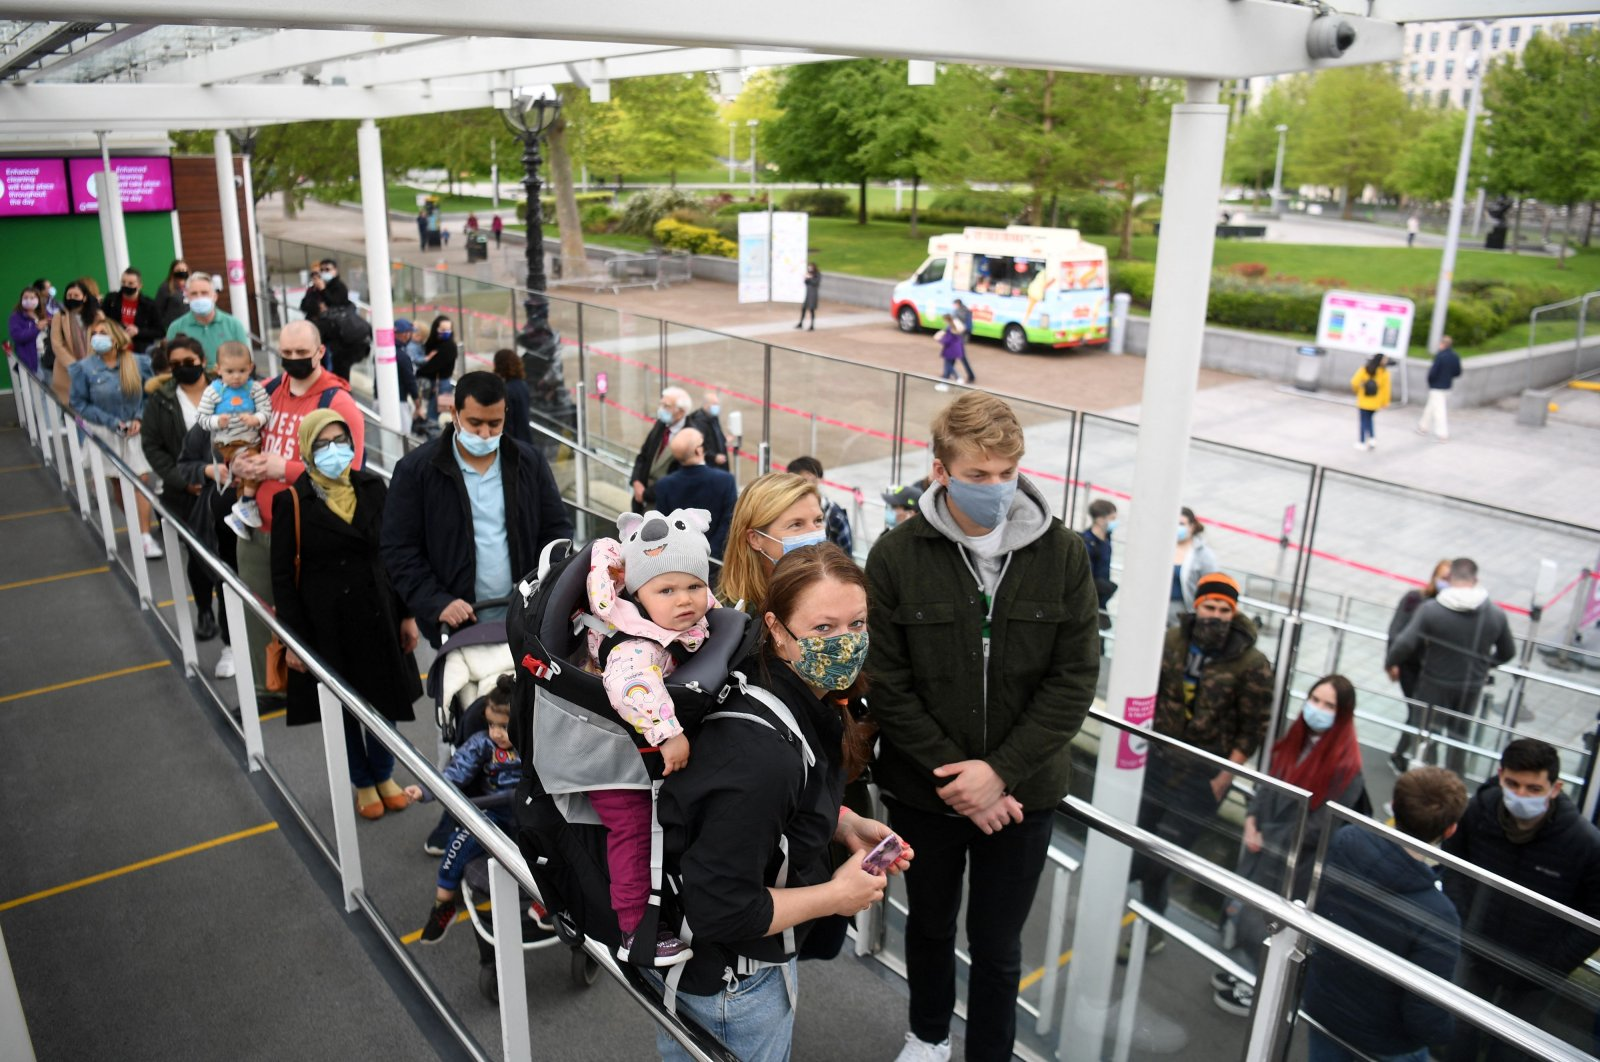 Customers wearing face coverings queue to board a pod on the re-opened London Eye tourist attraction in London as COVID-19 lockdown restrictions ease across the U.K., May 17, 2021. (AFP Photo)